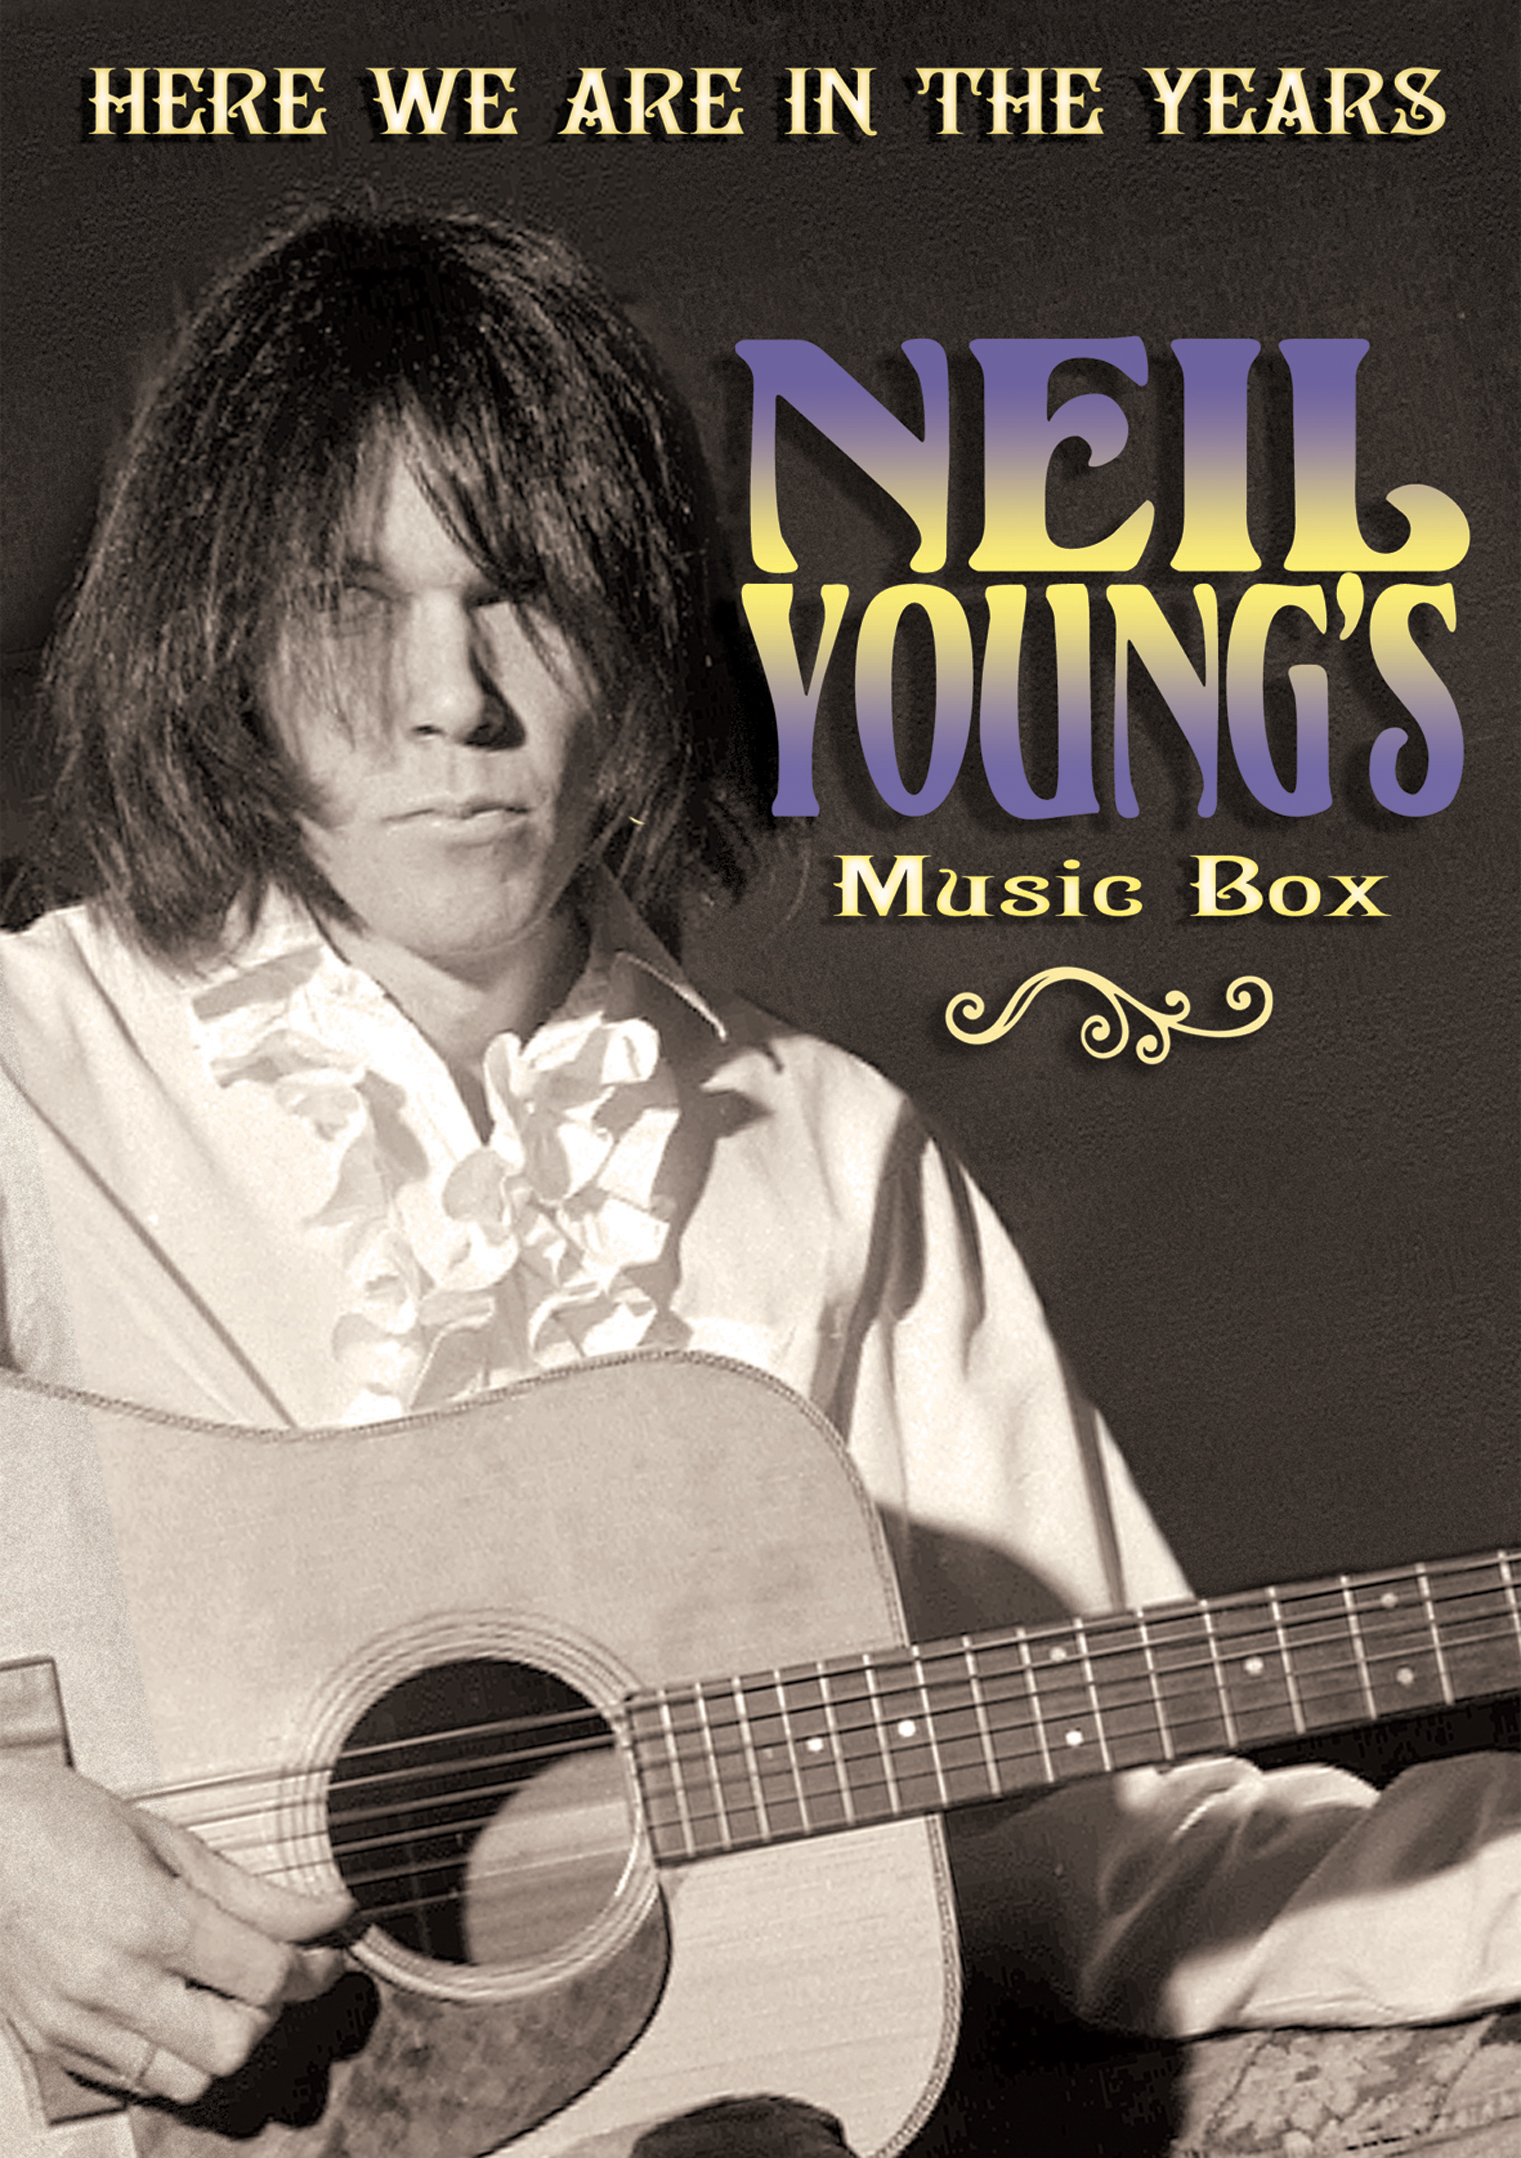 Neil Young Documentary to Highlight the Songwriter's Influences